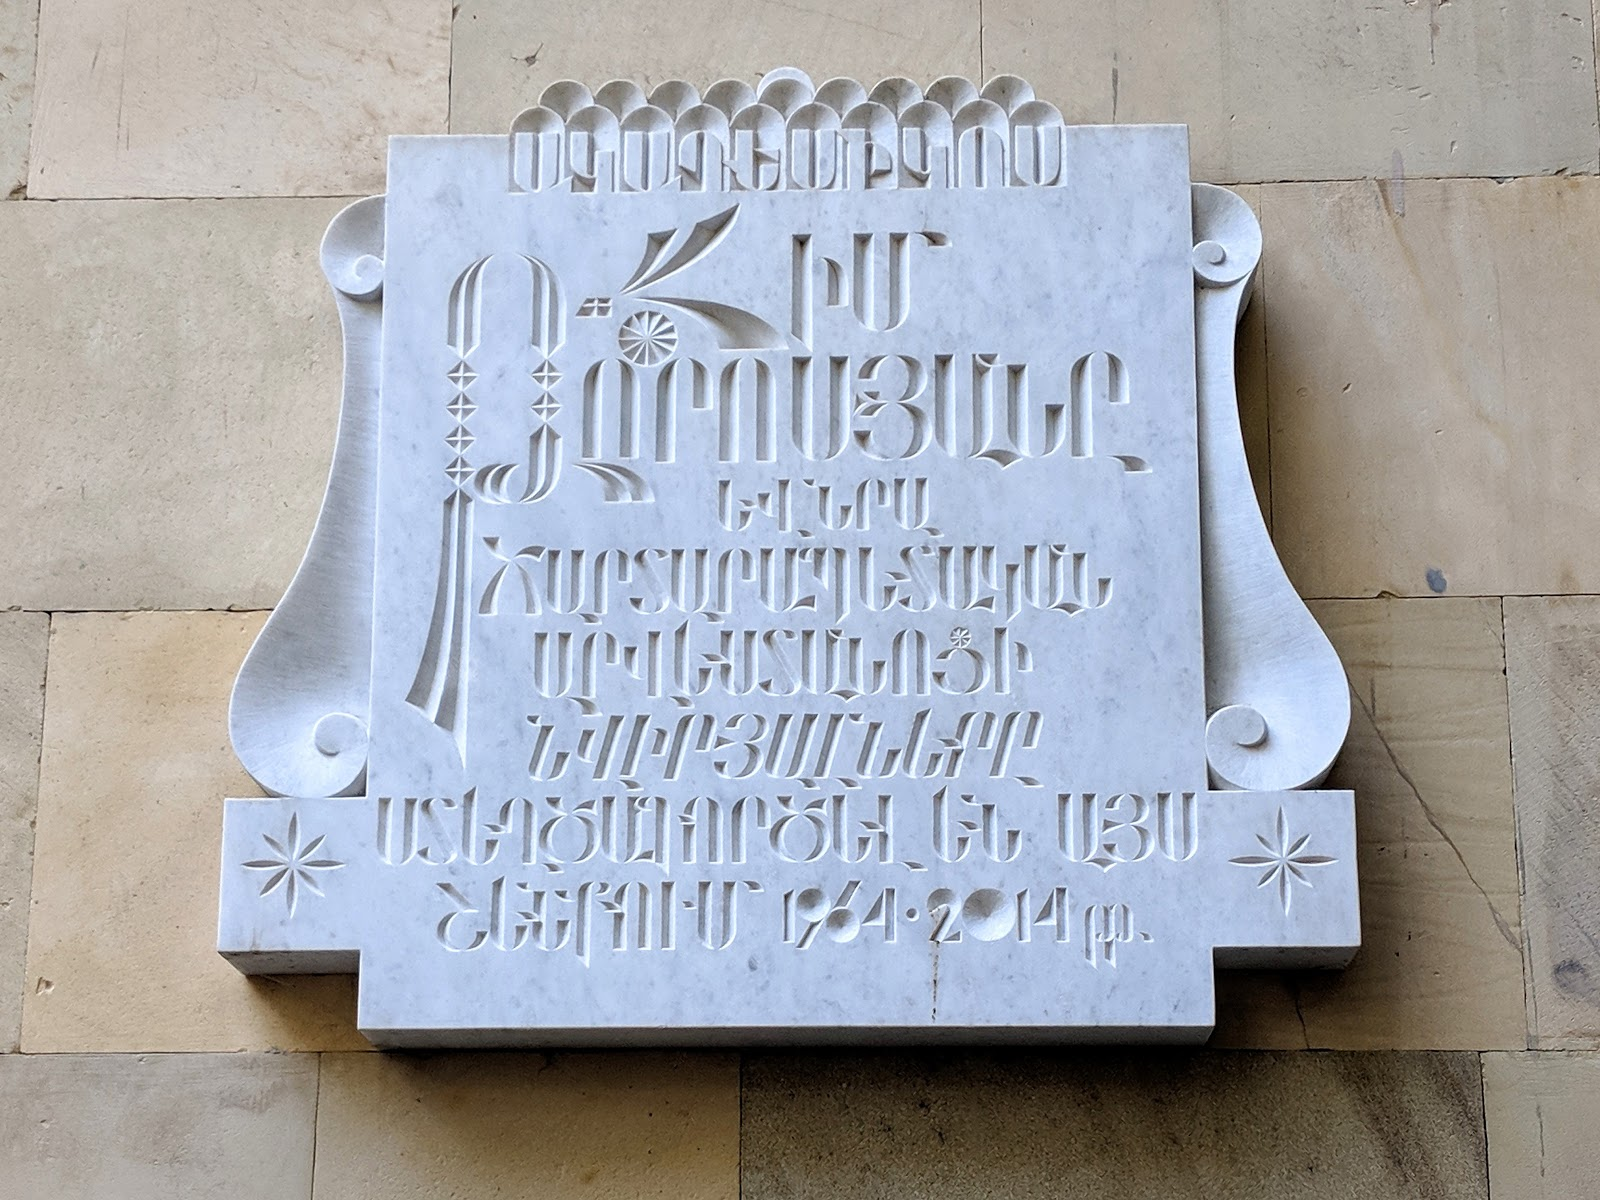 Photograph of the carved slab marking the studio of Jim Torosyan.